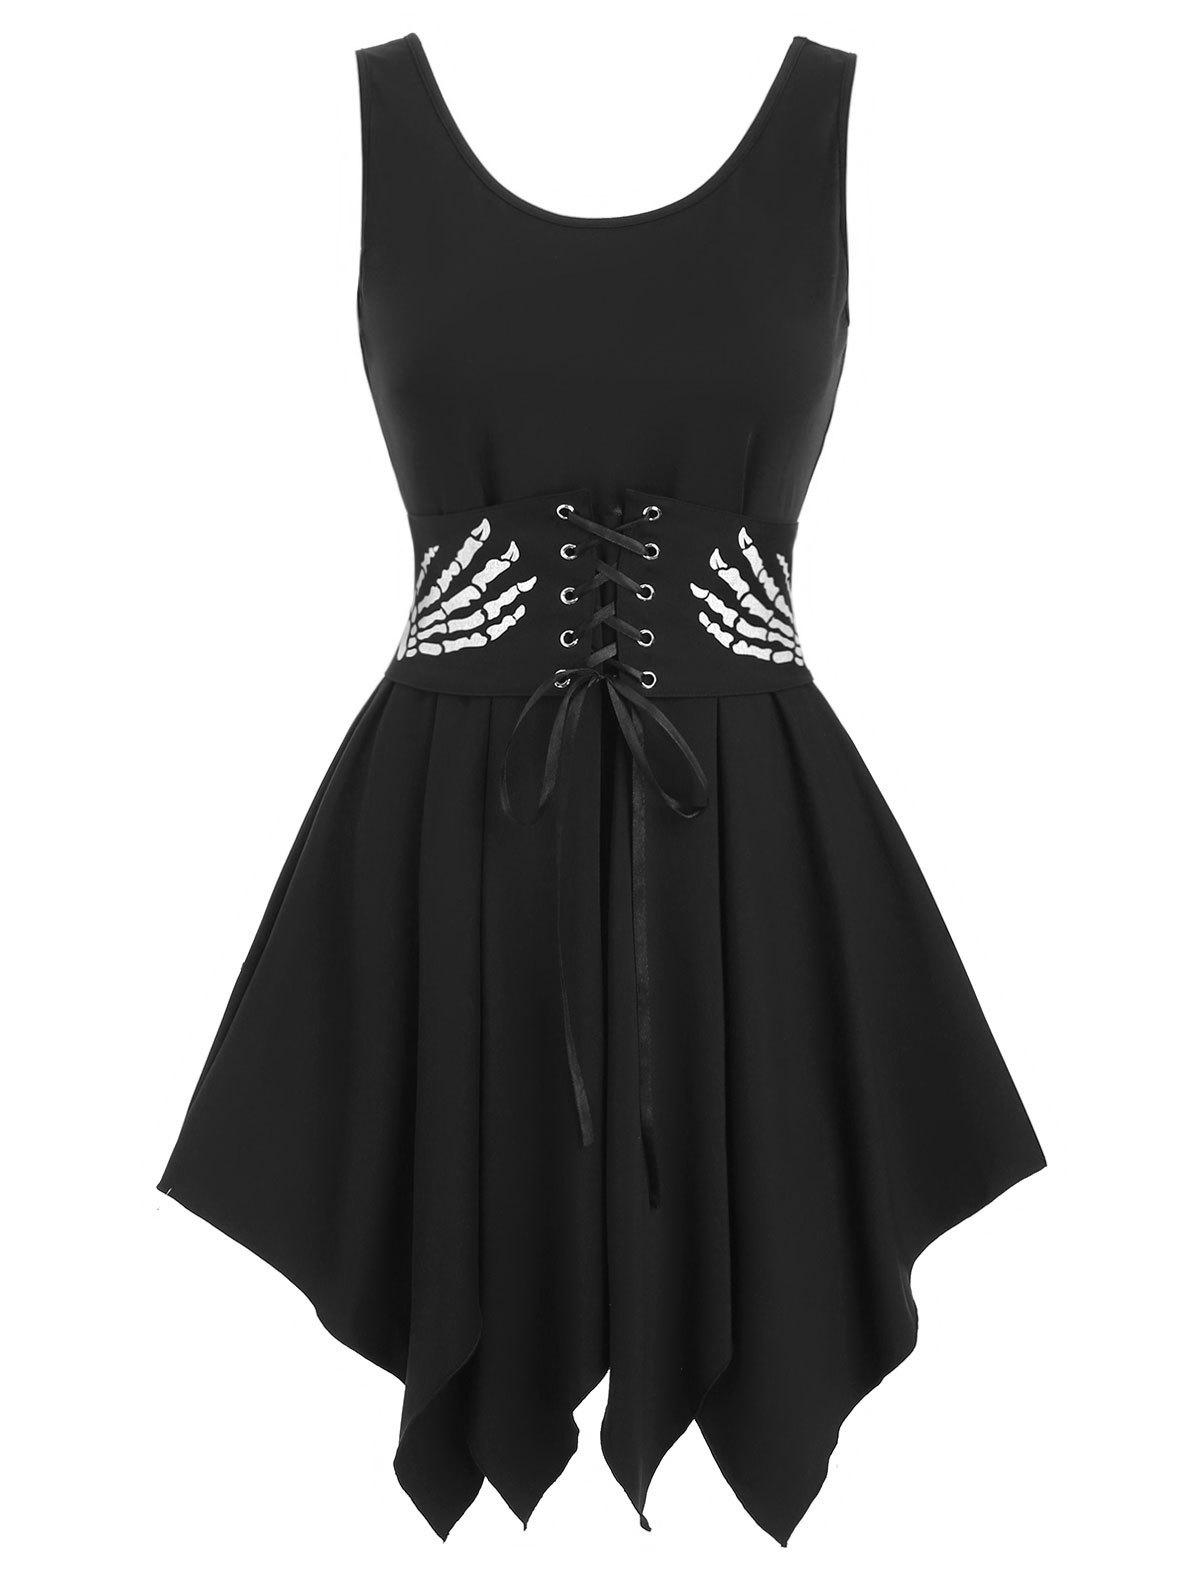 Chic Scoop Neck Asymmetric Dress with Skull Corset Belt